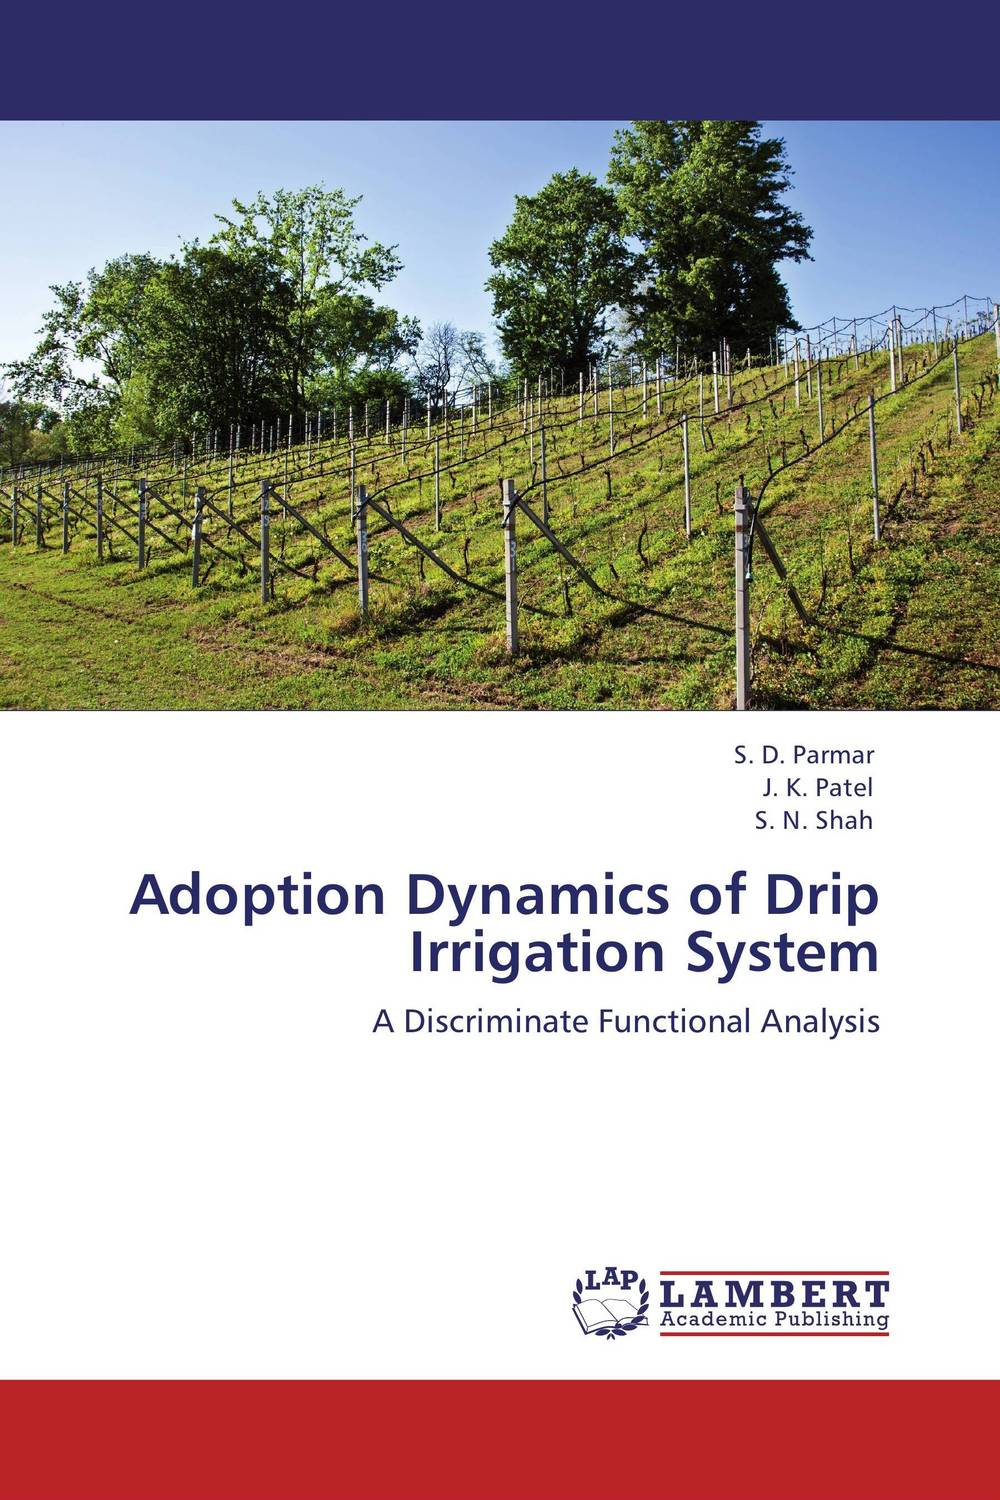 Adoption Dynamics of Drip Irrigation System structure of agricultural science and technology policy system